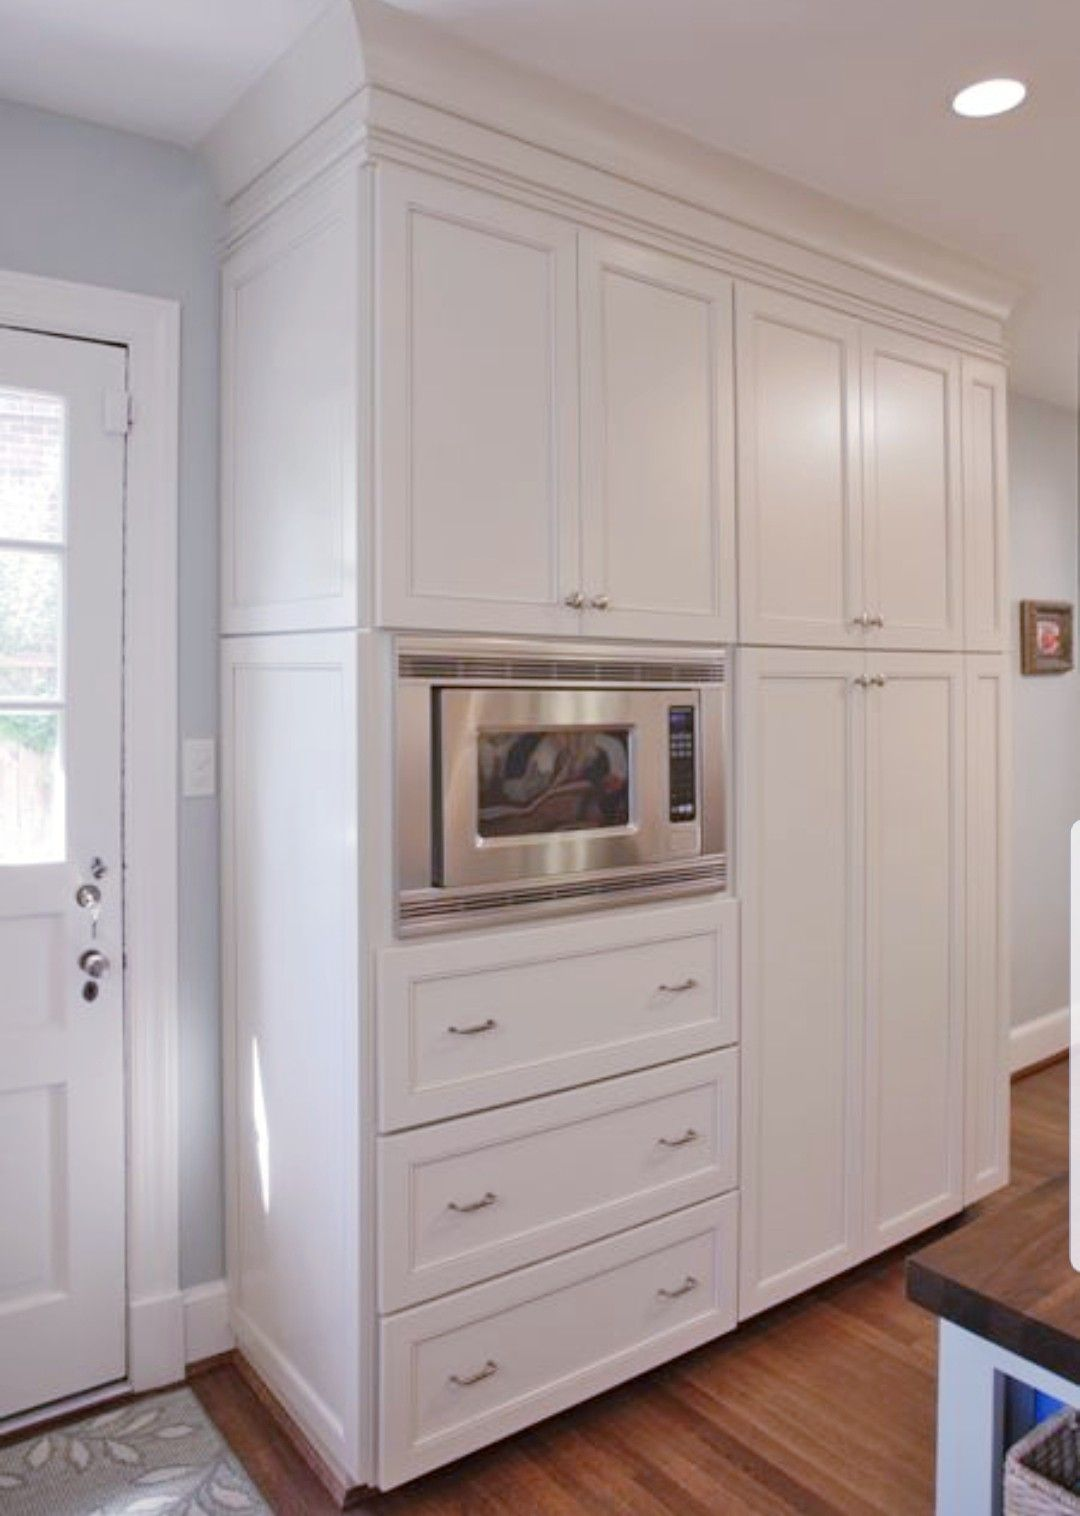 Pin By Sherry Allnutt On Kitchen Ideas Built In Microwave Cabinet Kitchen Pantry Cabinets Pantry Cupboard Designs